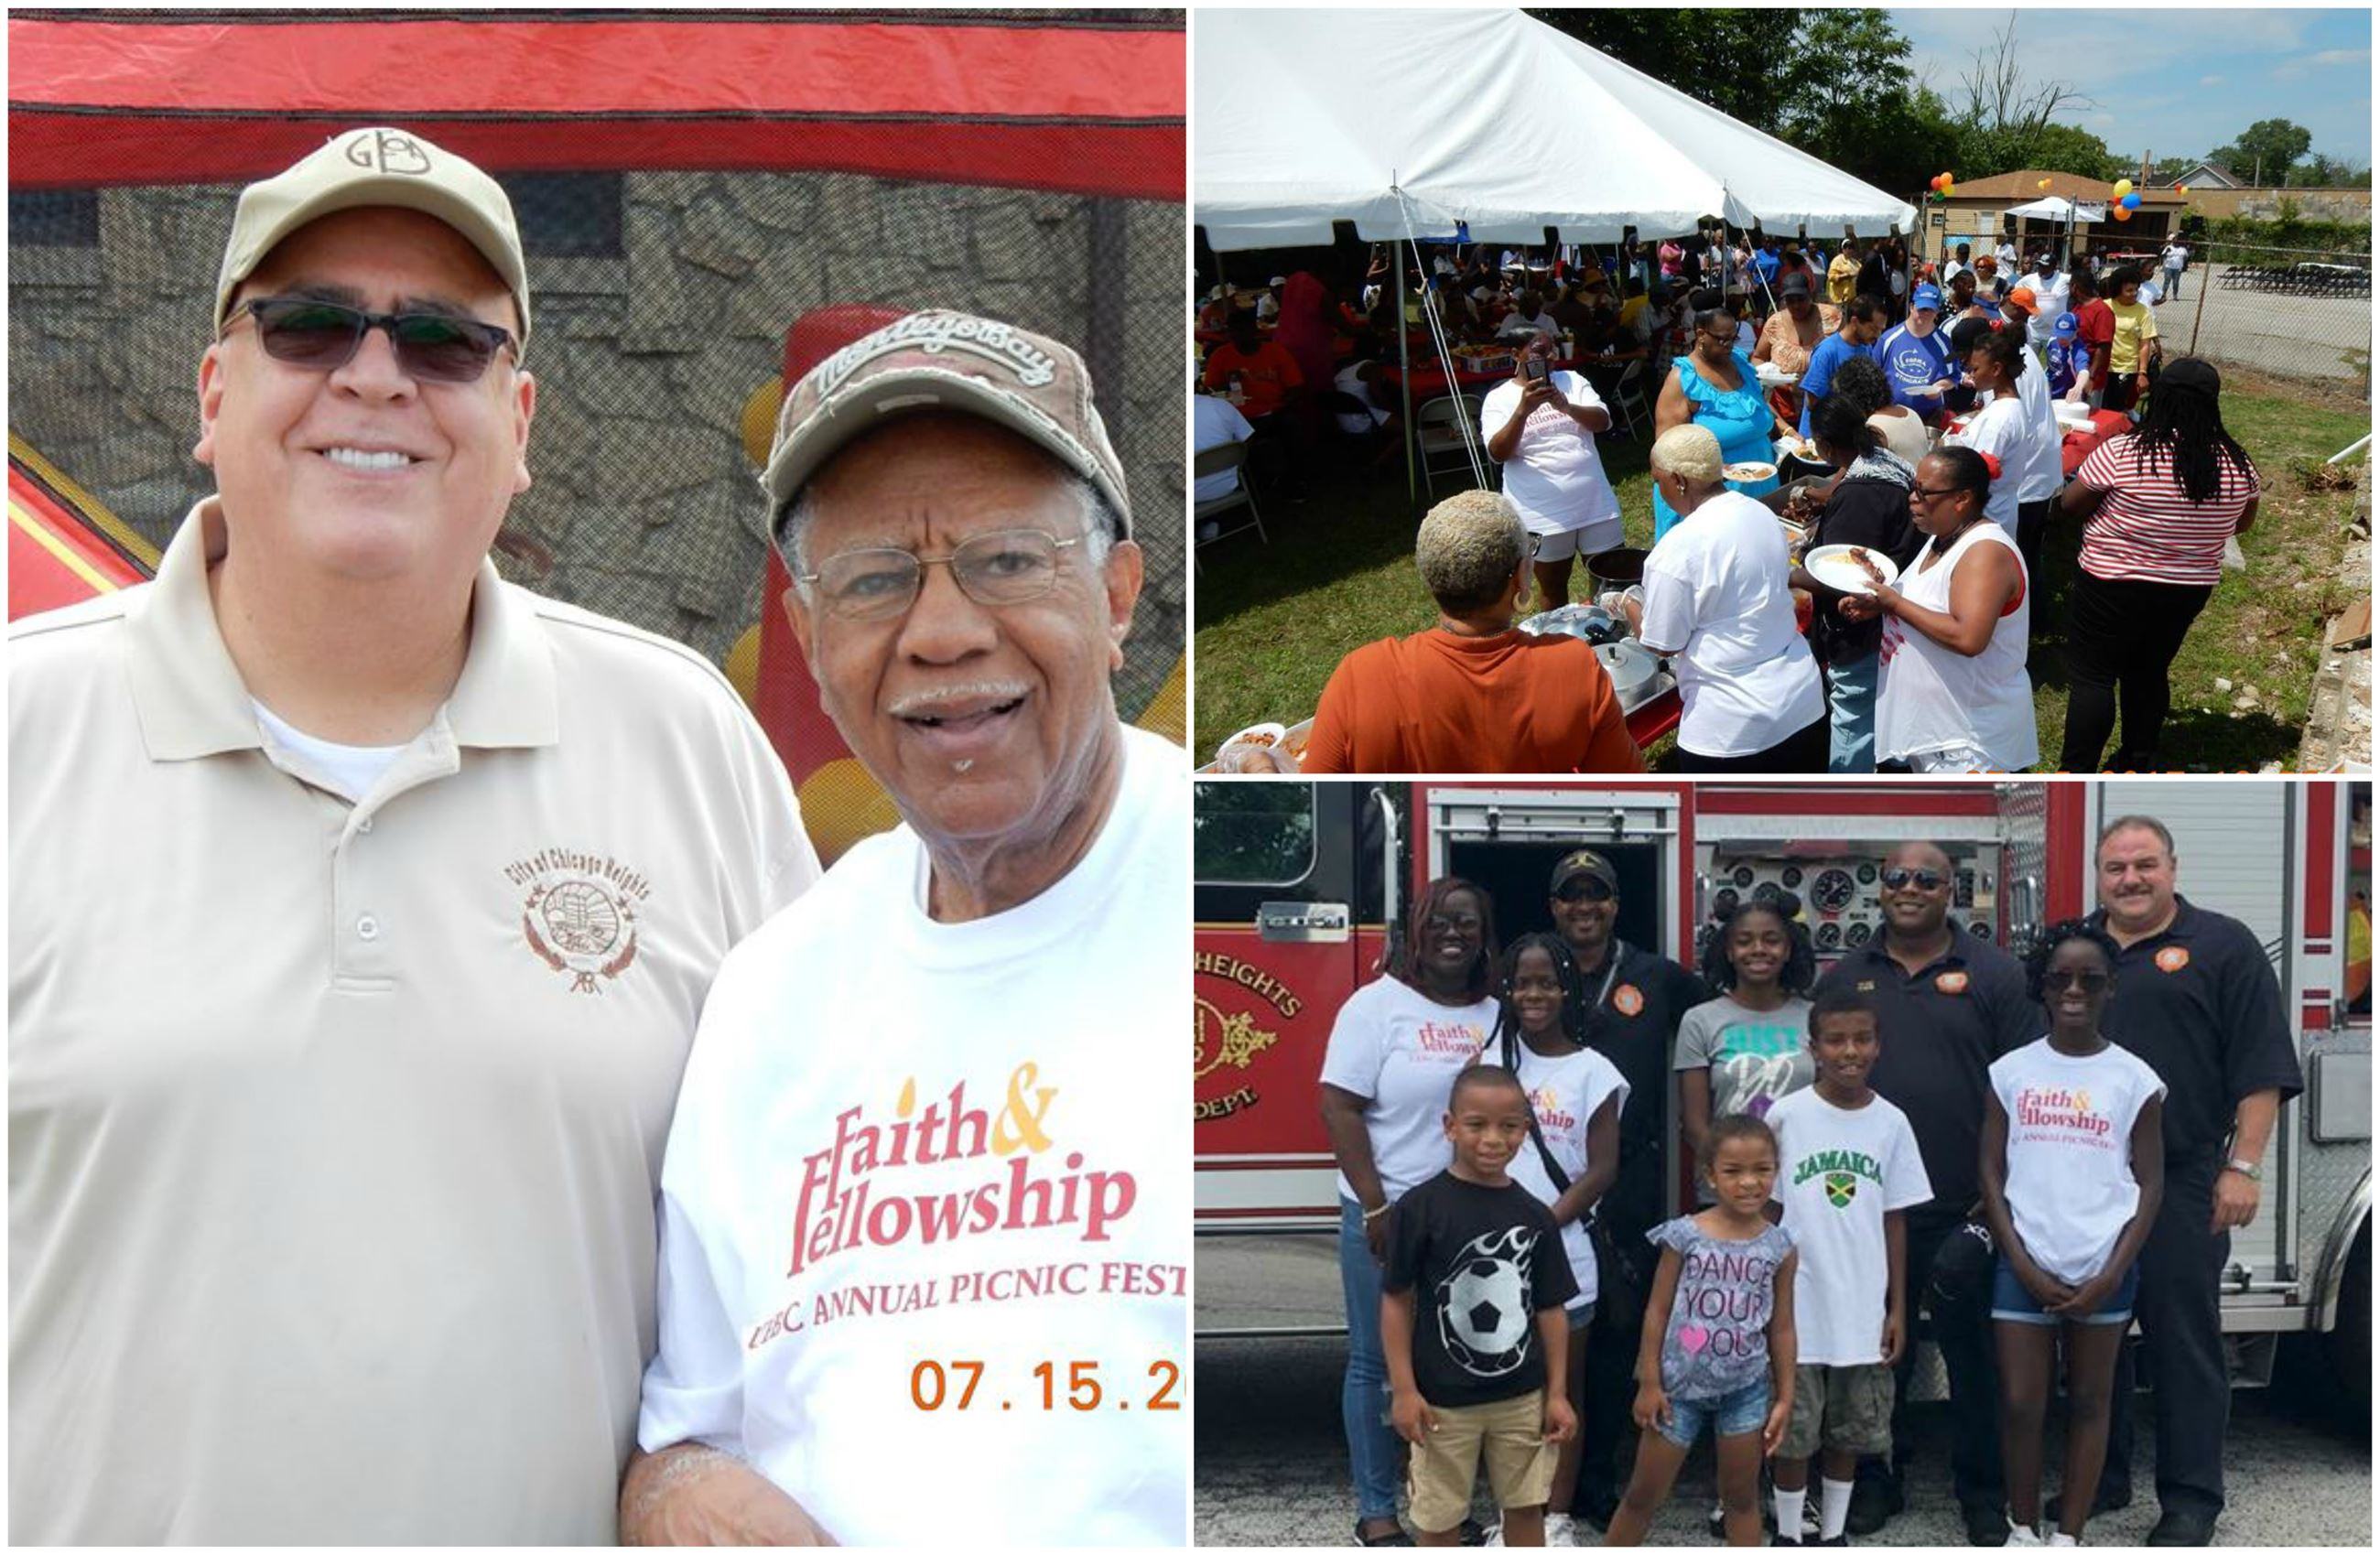 It was a beautiful day for the UEBC's 1st Faith & Fellowship BLOCKFEST on July 15th!  In addition